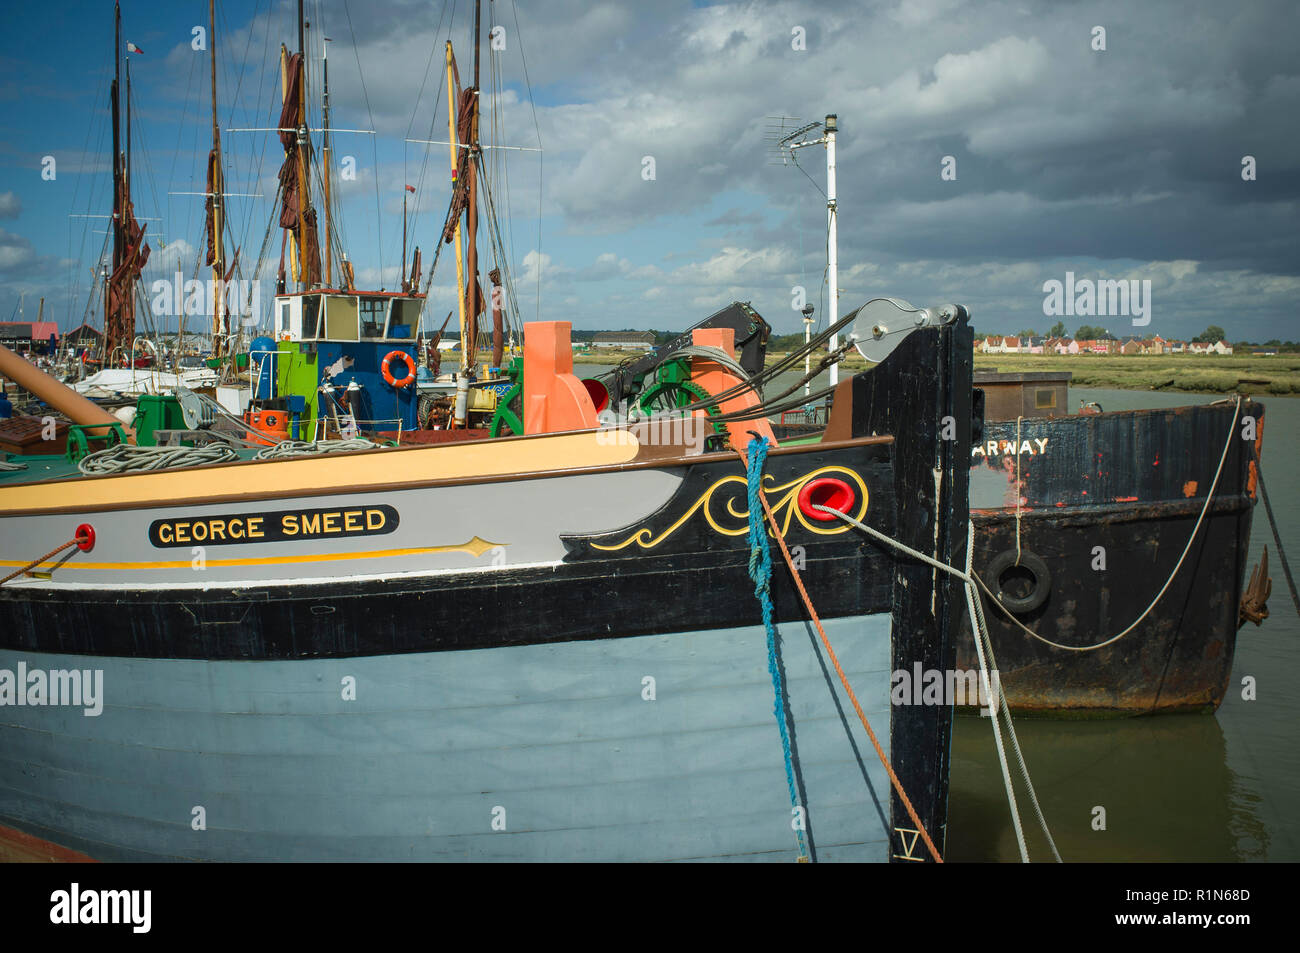 Colourful sailing barges, The Starway and the George Smeed, moored on the Blackwater Estuary at Maldon, Essex - Stock Image